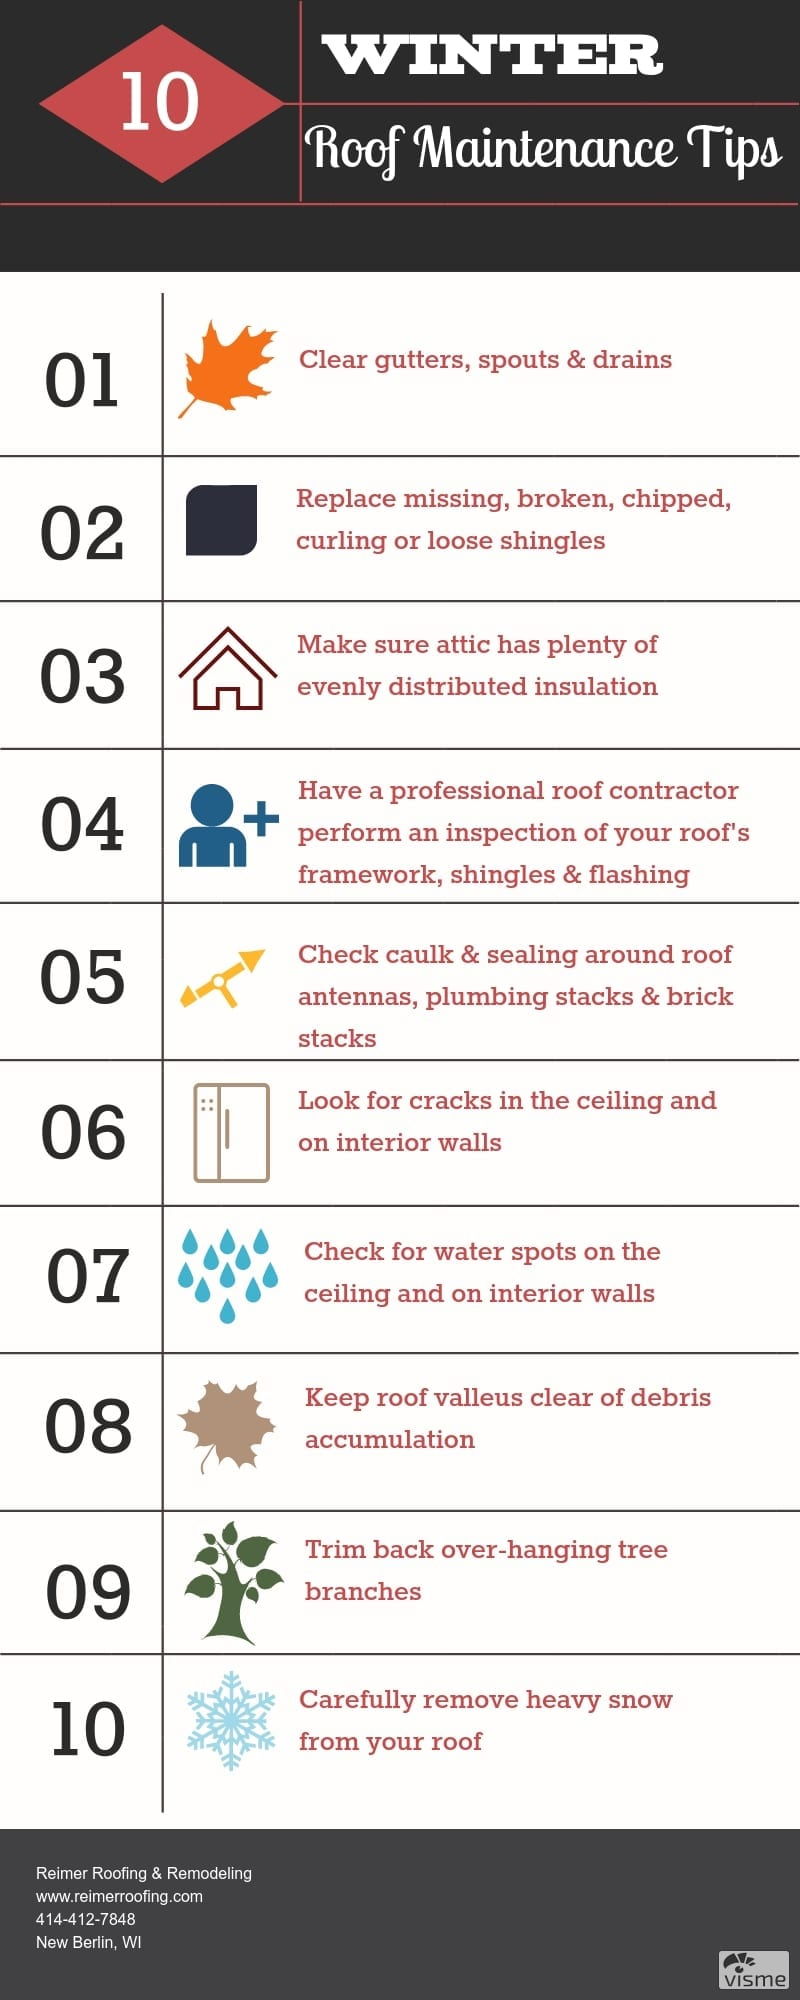 10 Winter Roof Maintenance Tips